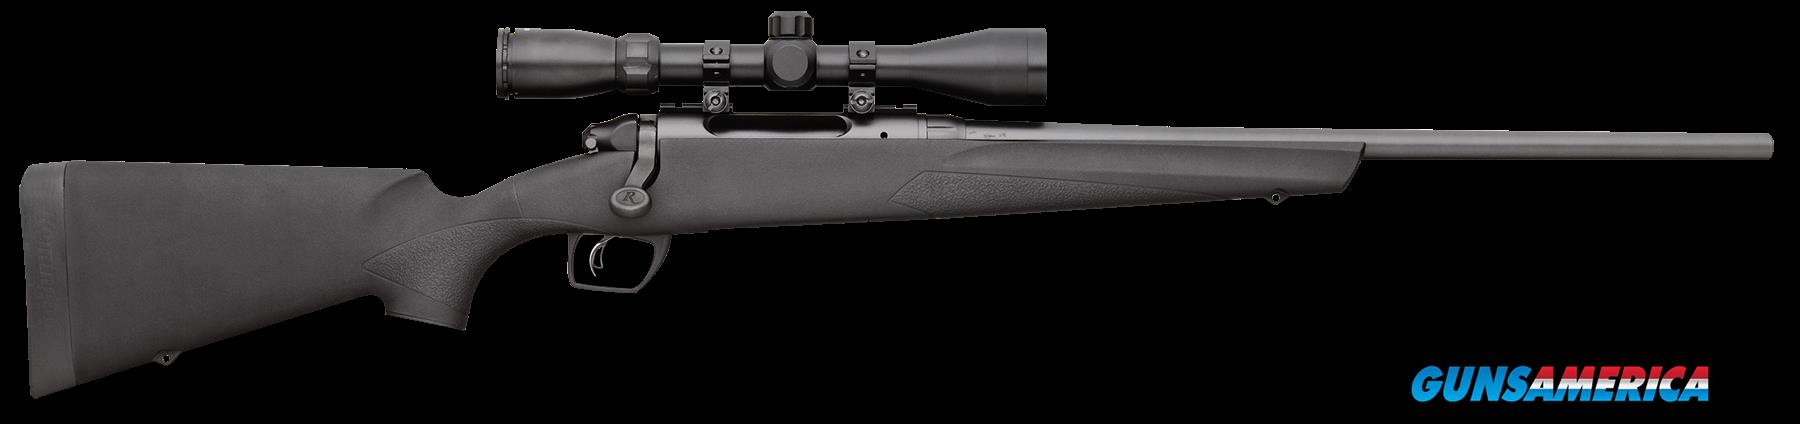 "Remington Firearms 85846 783 with Scope Bolt 30-06 Springfield 22"" 4+1 Synthetic Black Stk Black  Guns > Rifles > R Misc Rifles"